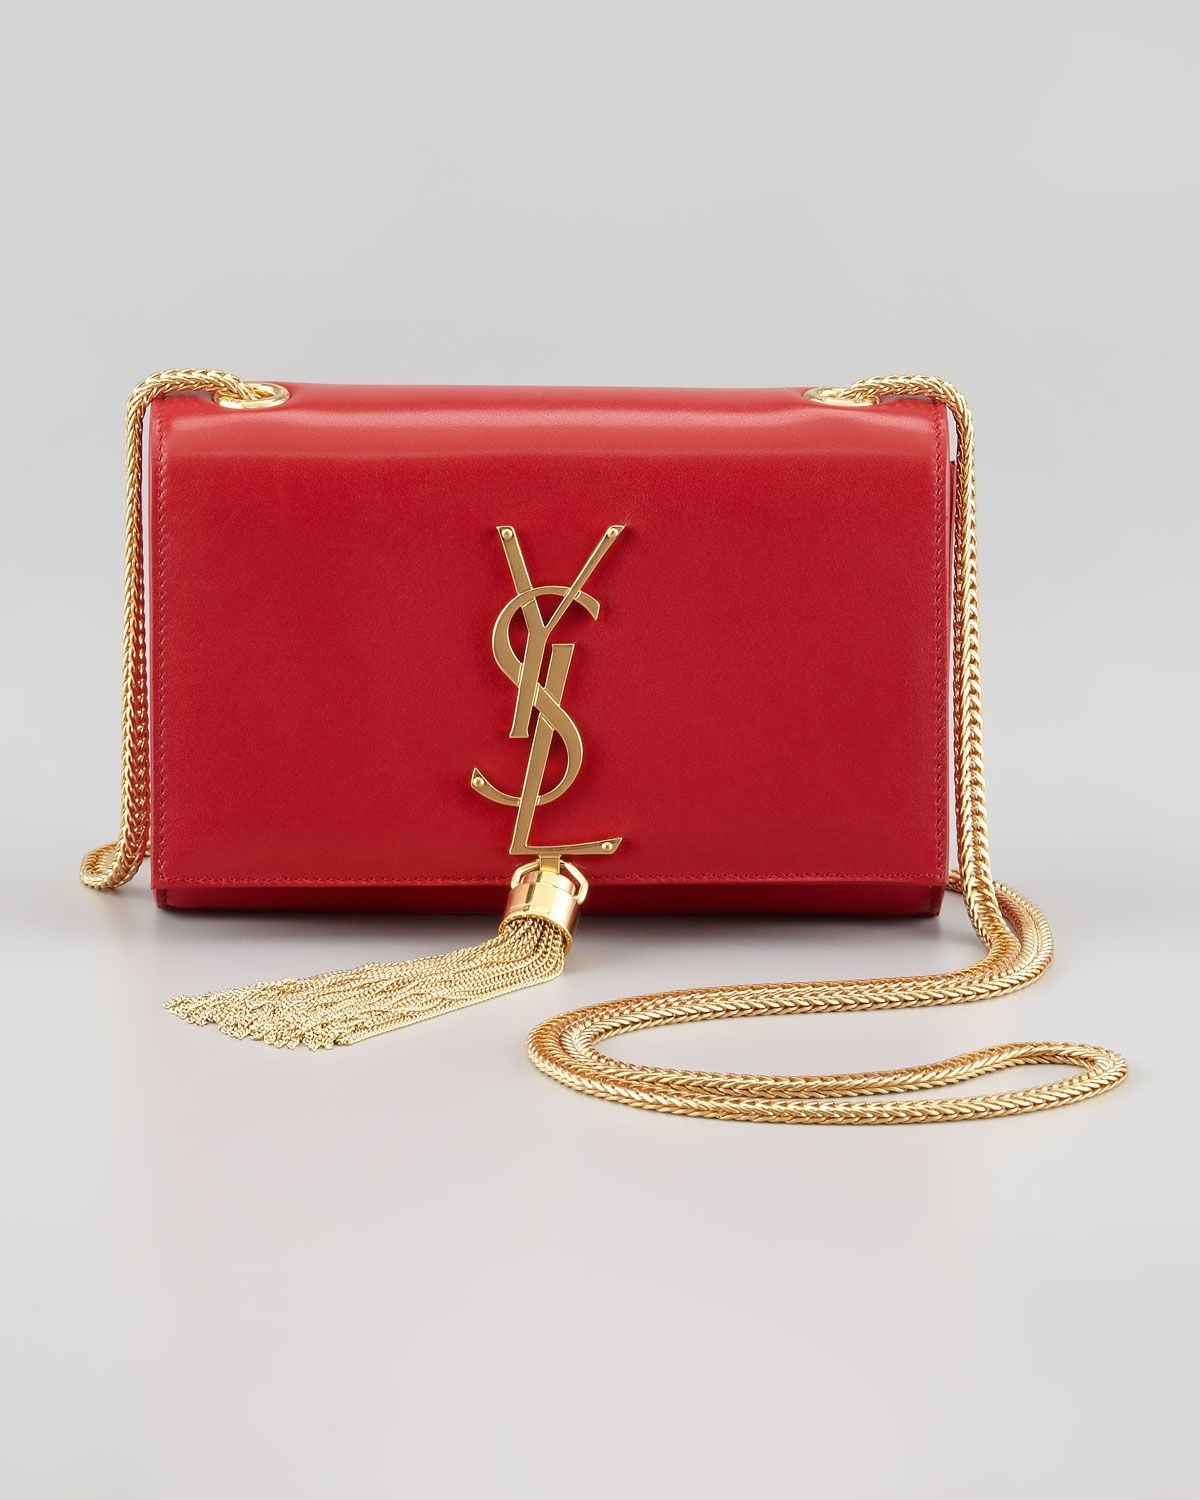 de0a0af6 Cassandre Small Tassel Crossbody Bag, Red | Mo`s accessories | Ysl ...